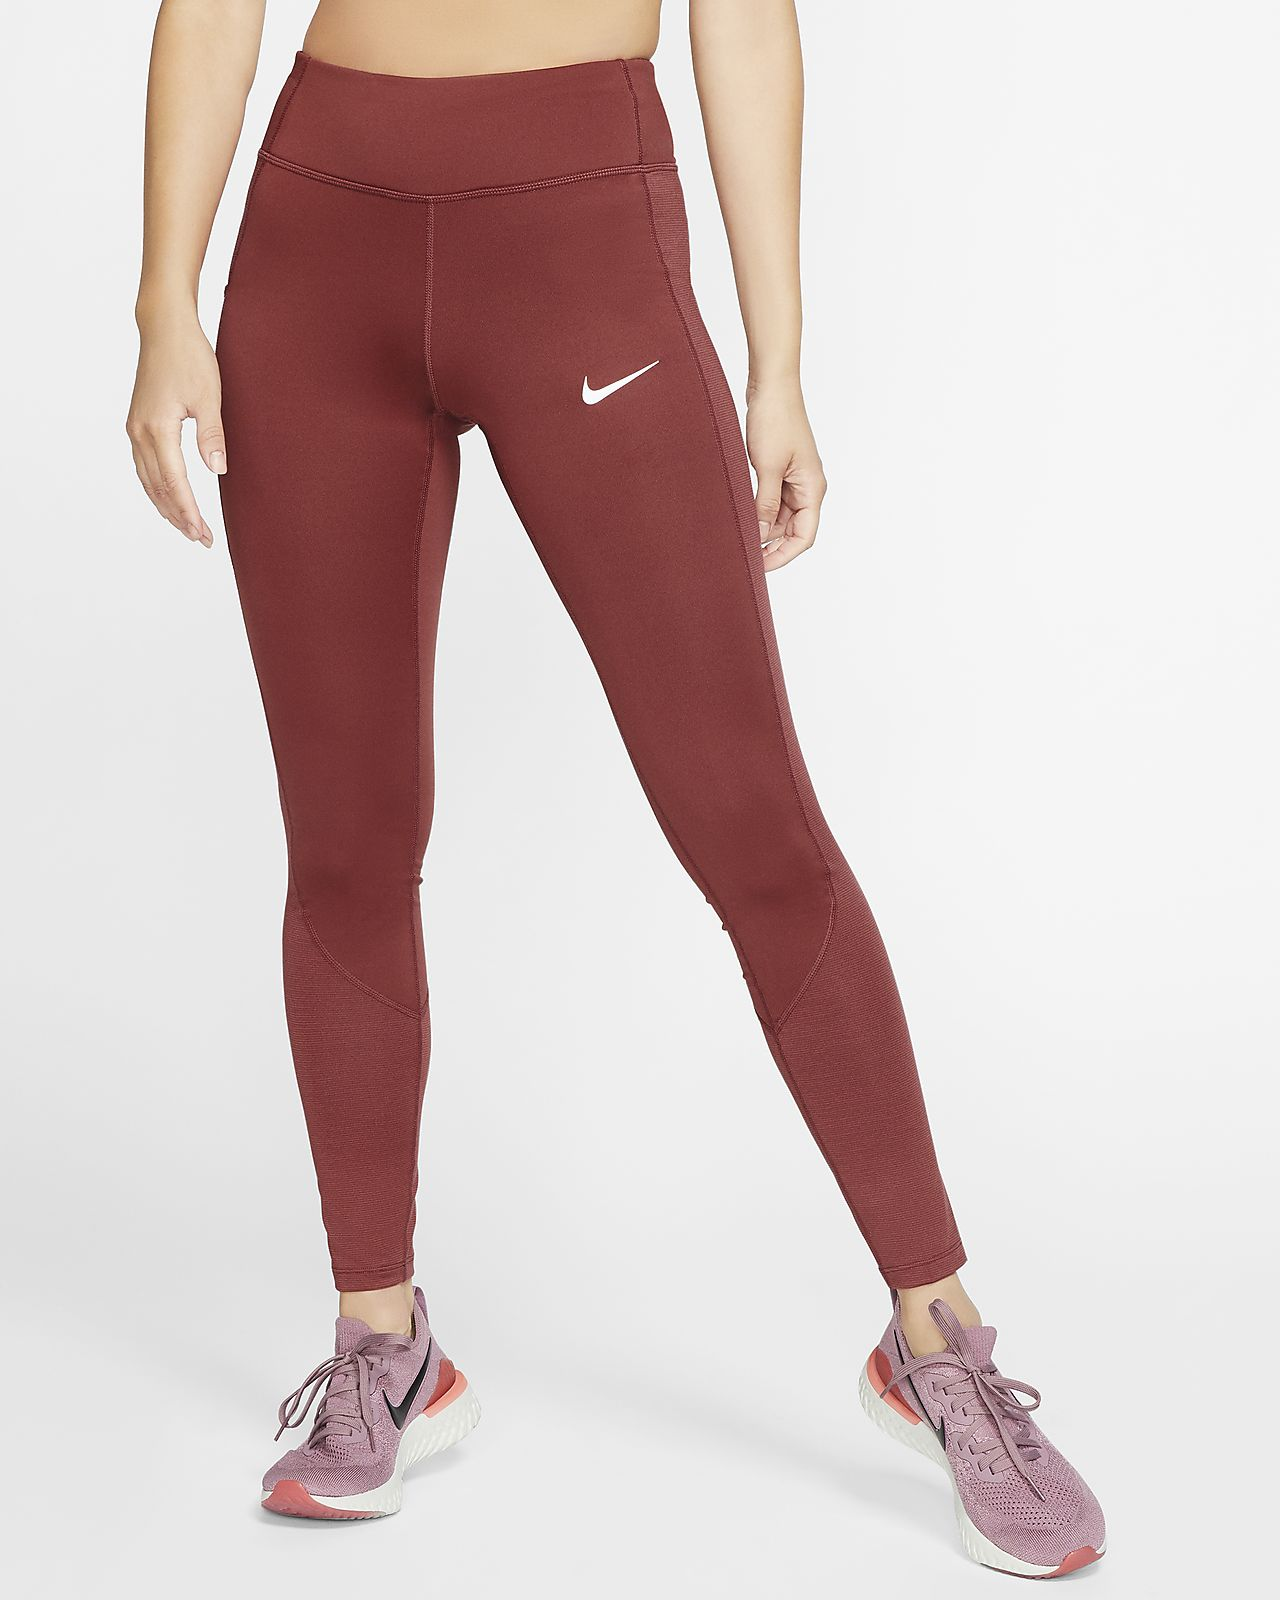 Nike Racer Women's Warm Running Leggings